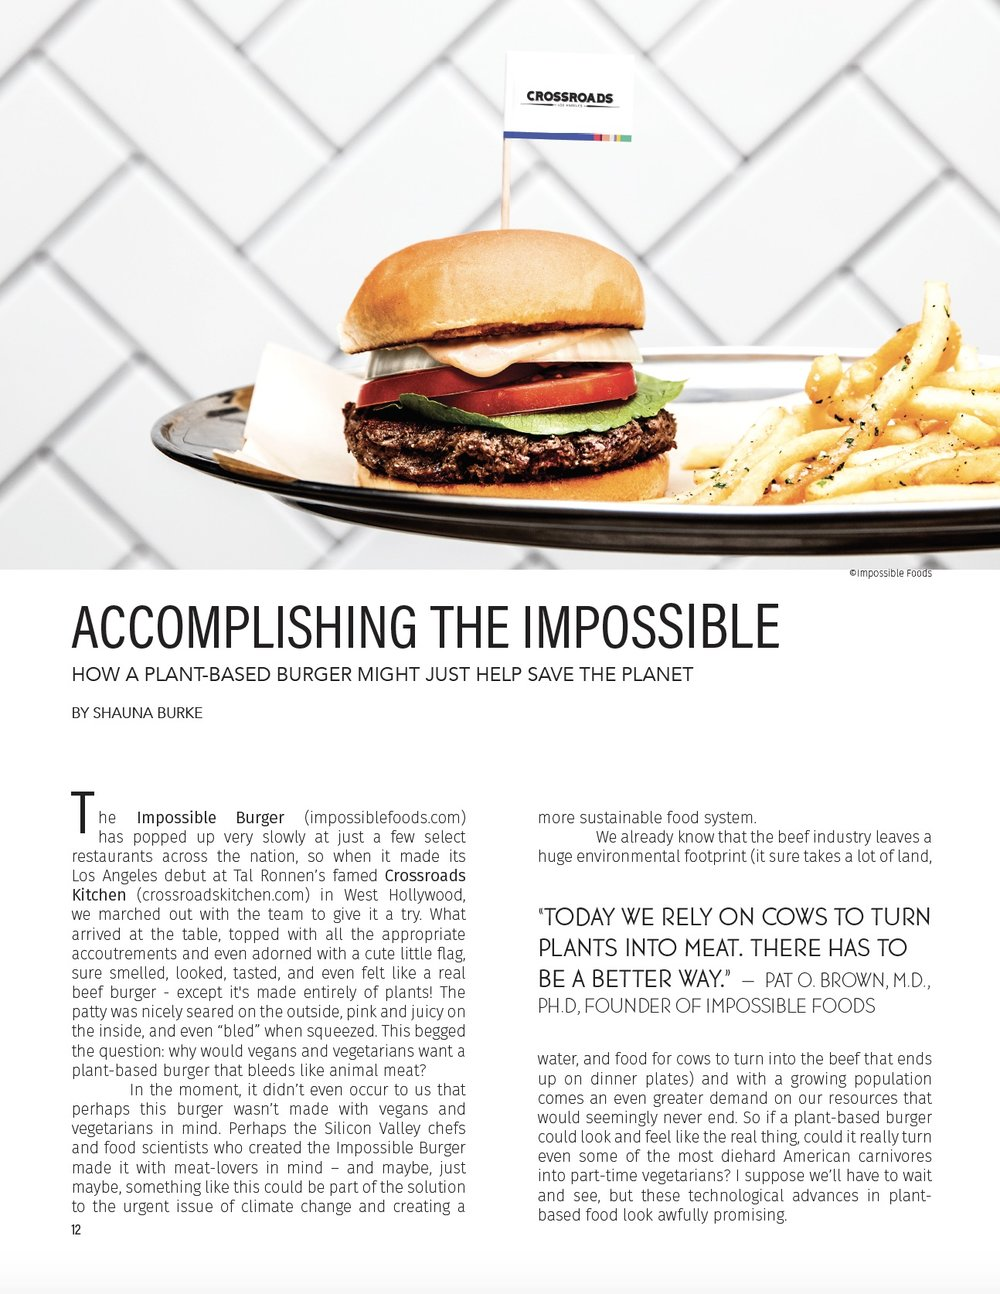 Accomplishing the Impossible /  Edible LA